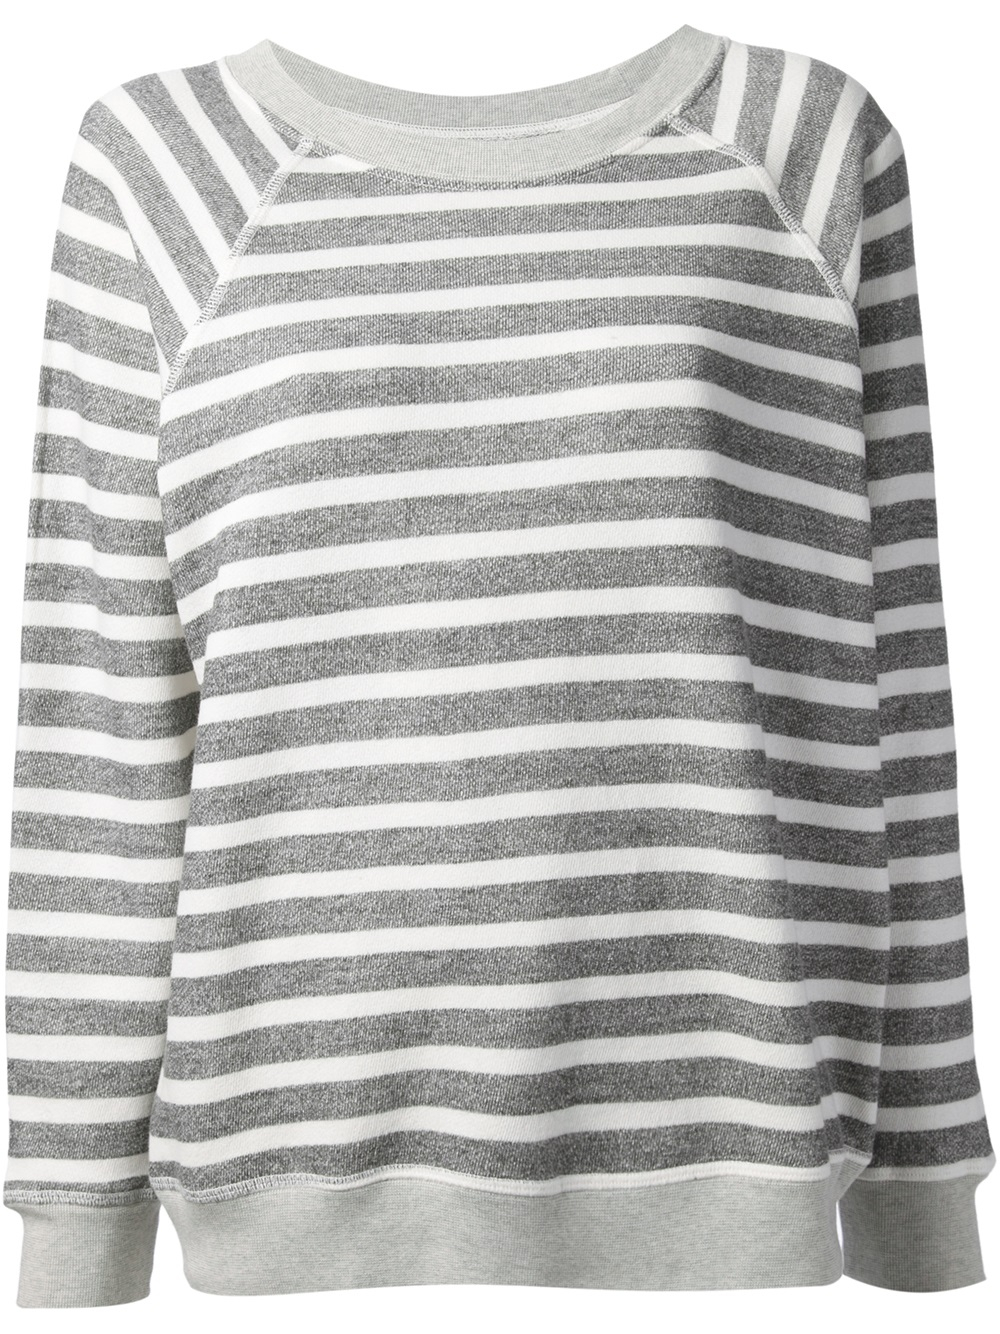 c9852e1e3 Lyst - Bliss and Mischief Striped Sweatshirt in Gray